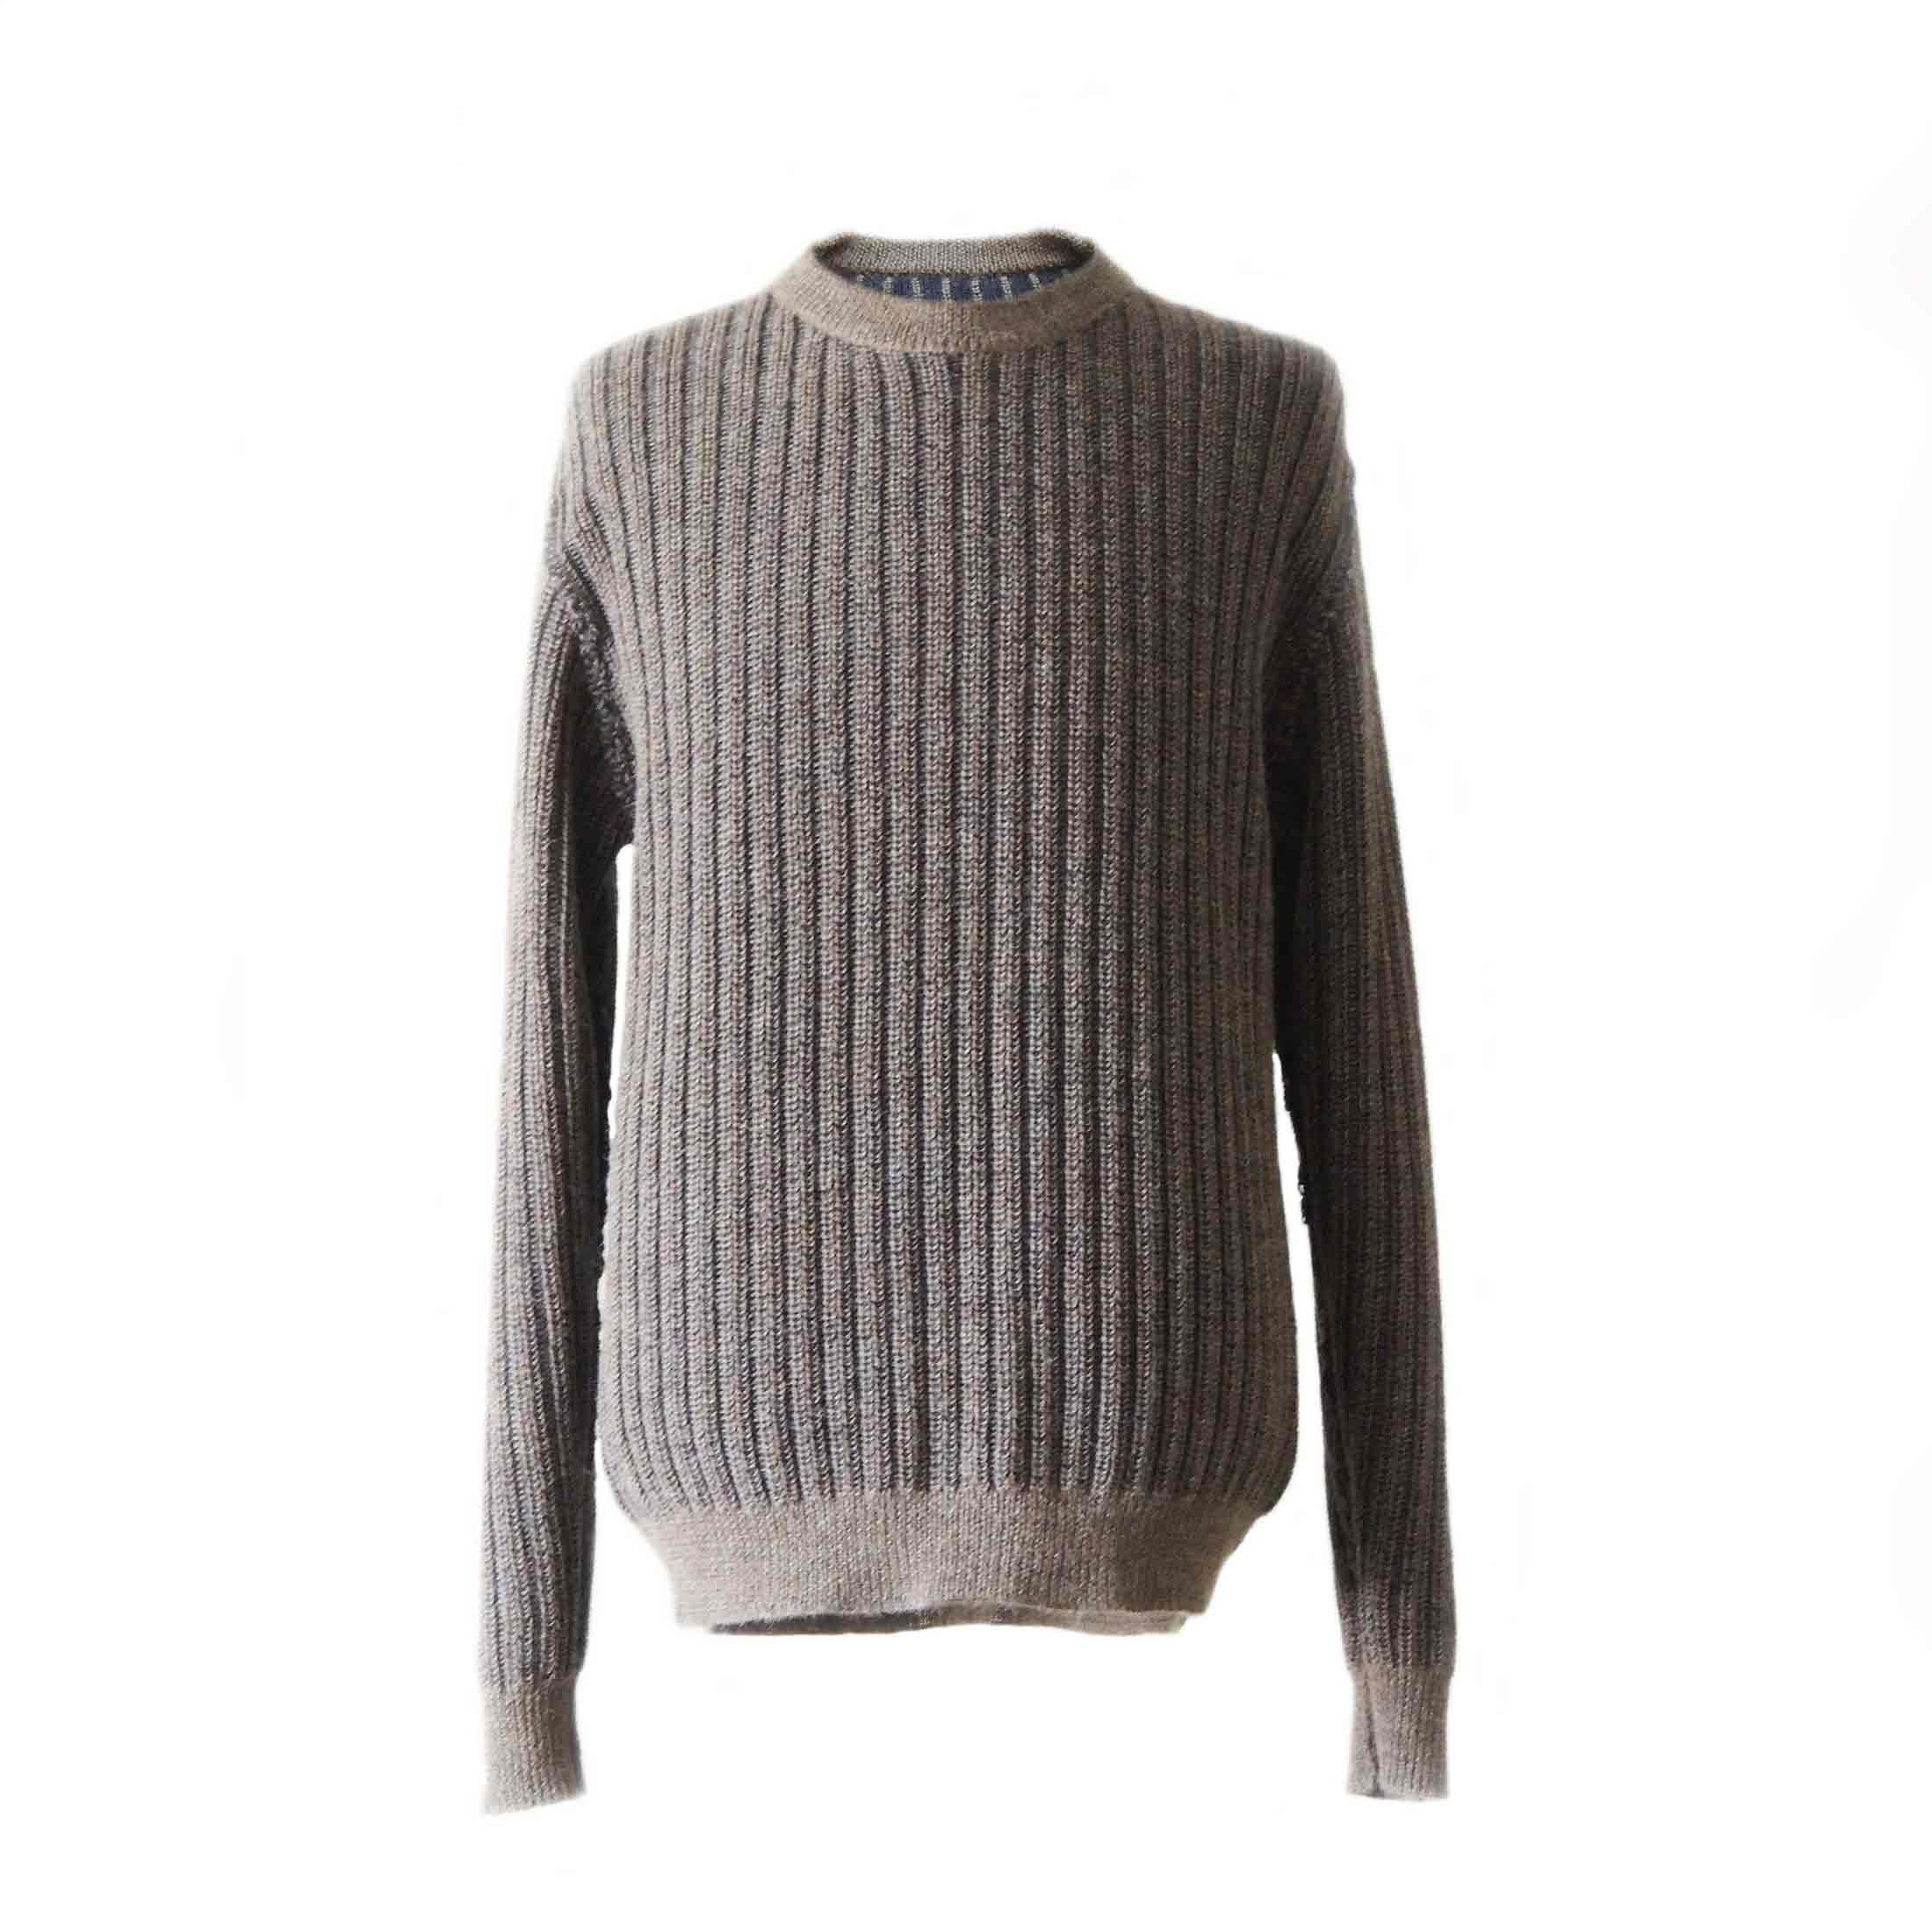 PopsFL Knitwear Wholesale Men sweater  chunky rib knitted reversible, with crew neck 100% alpaca